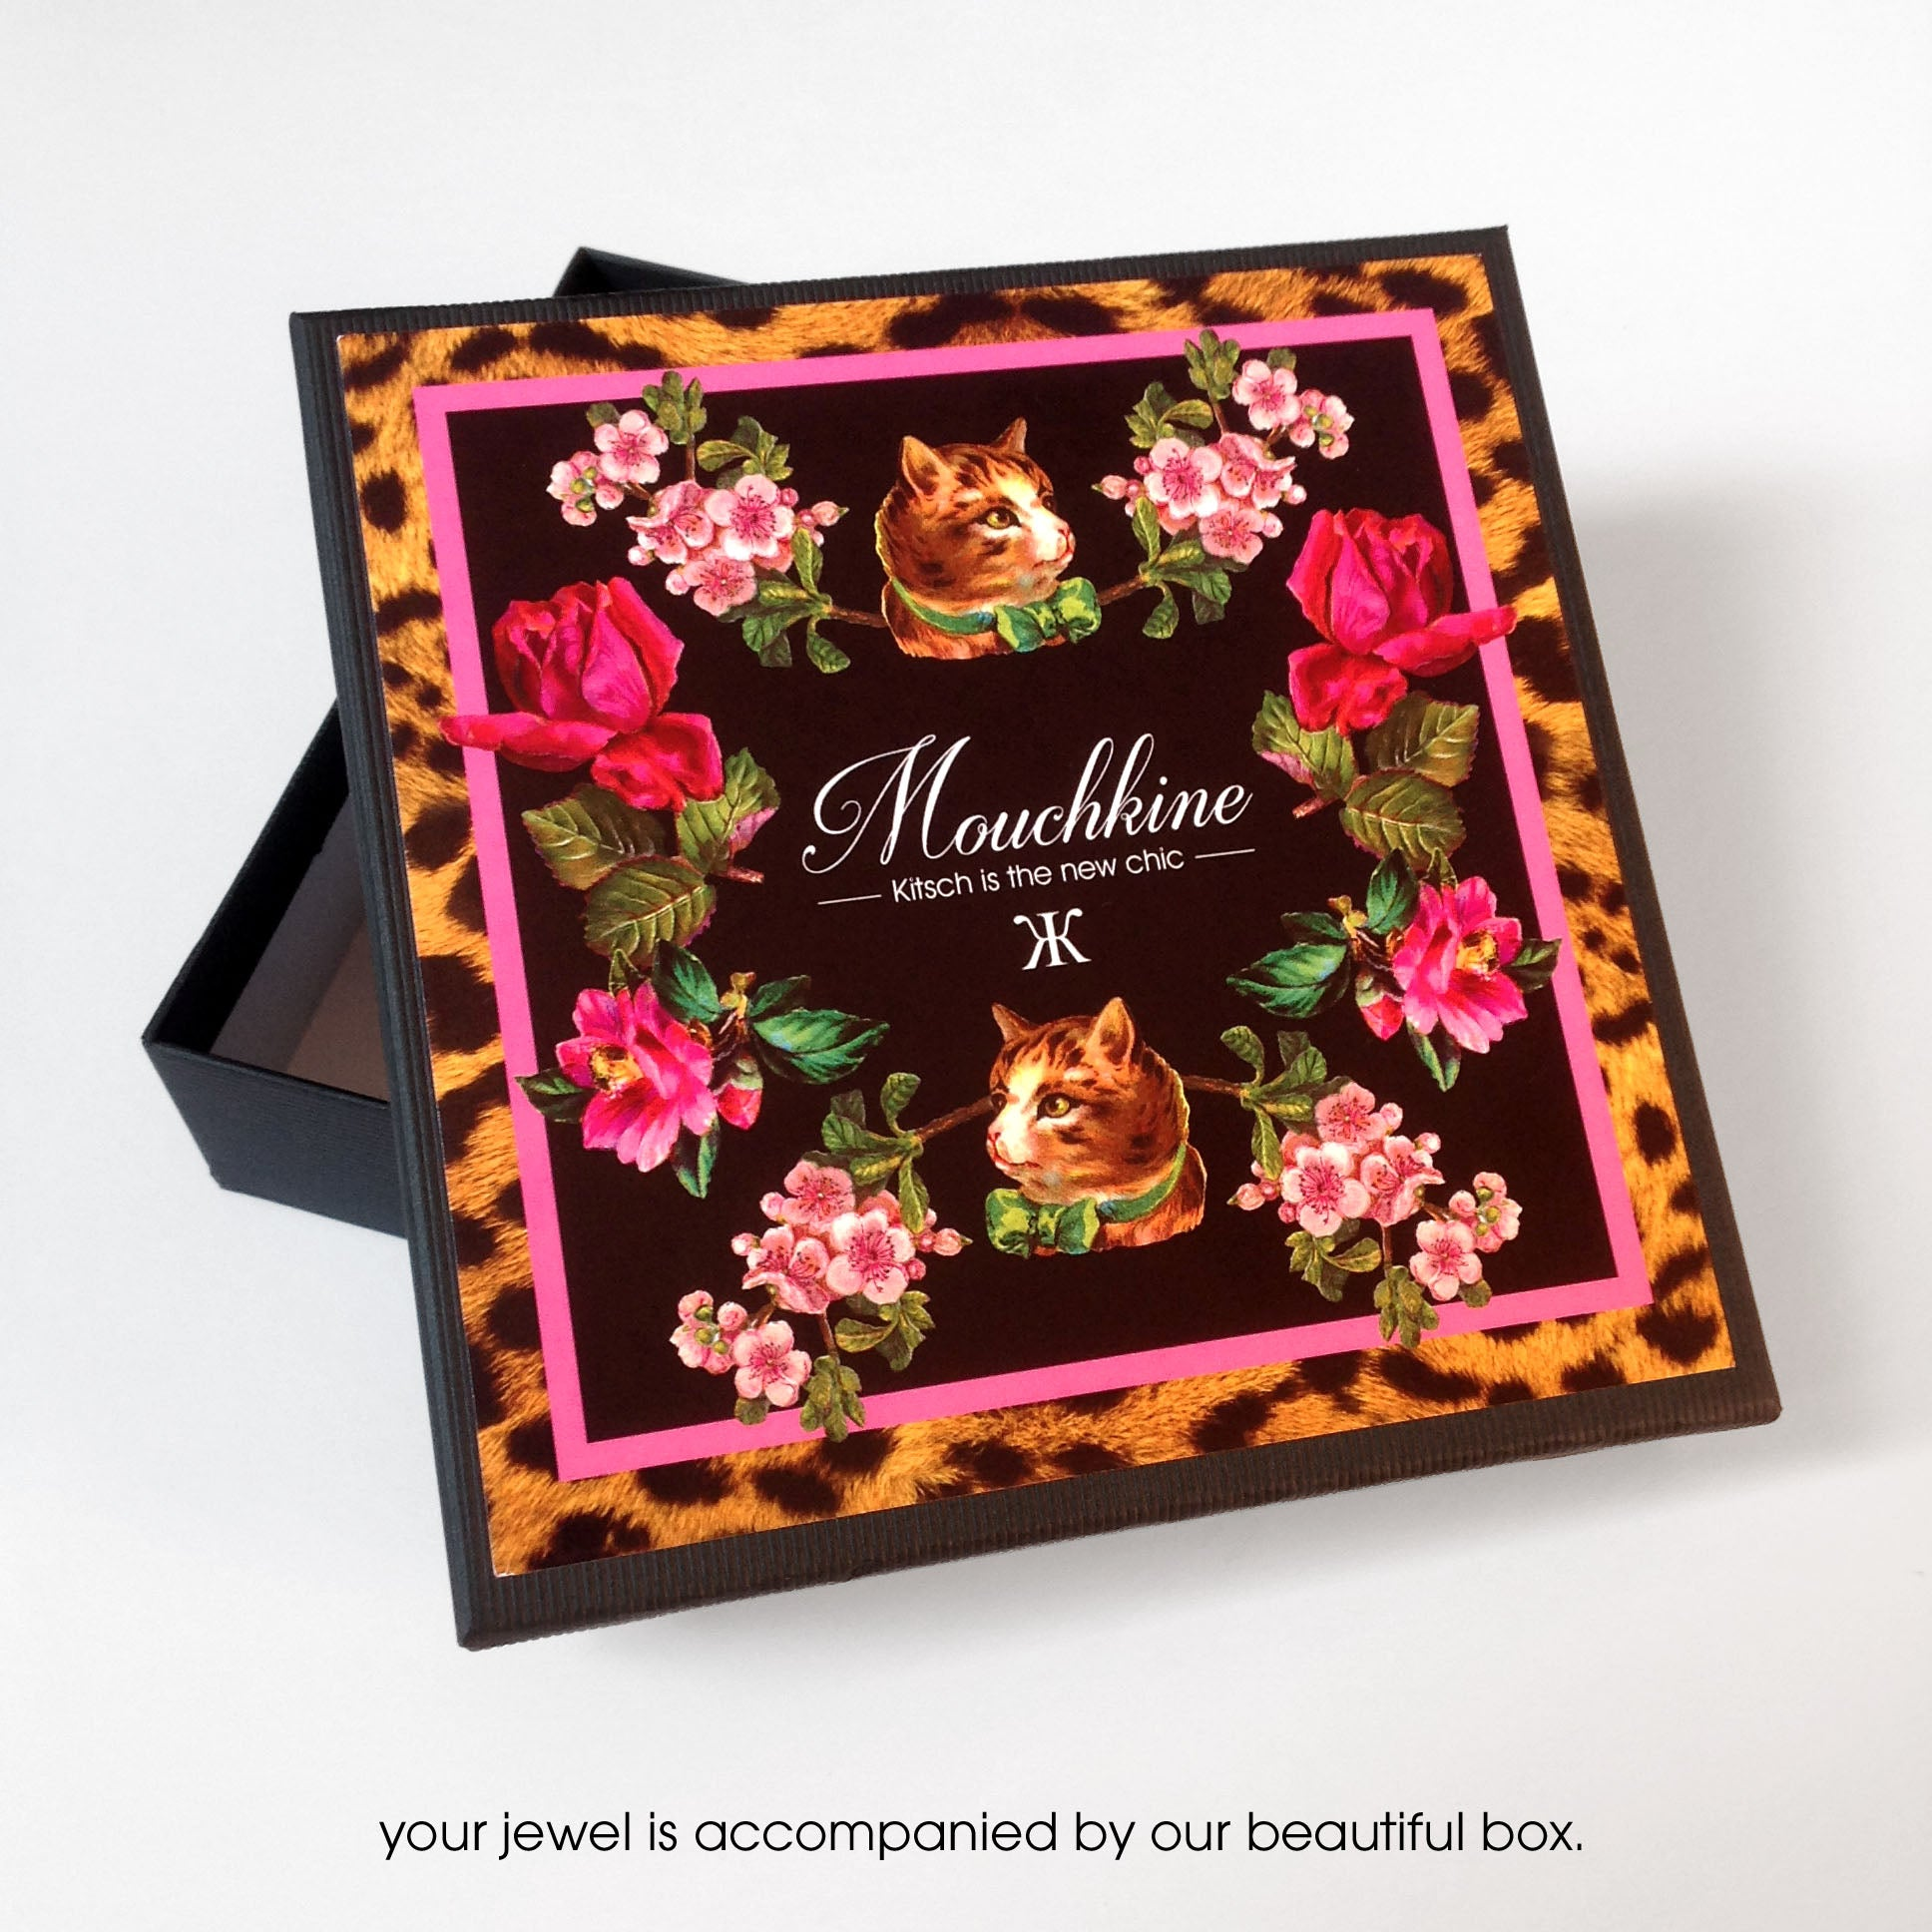 mouchkine jewelry packaging box. Boite des bijoux mouchkine jewelry, fait main et made in france.